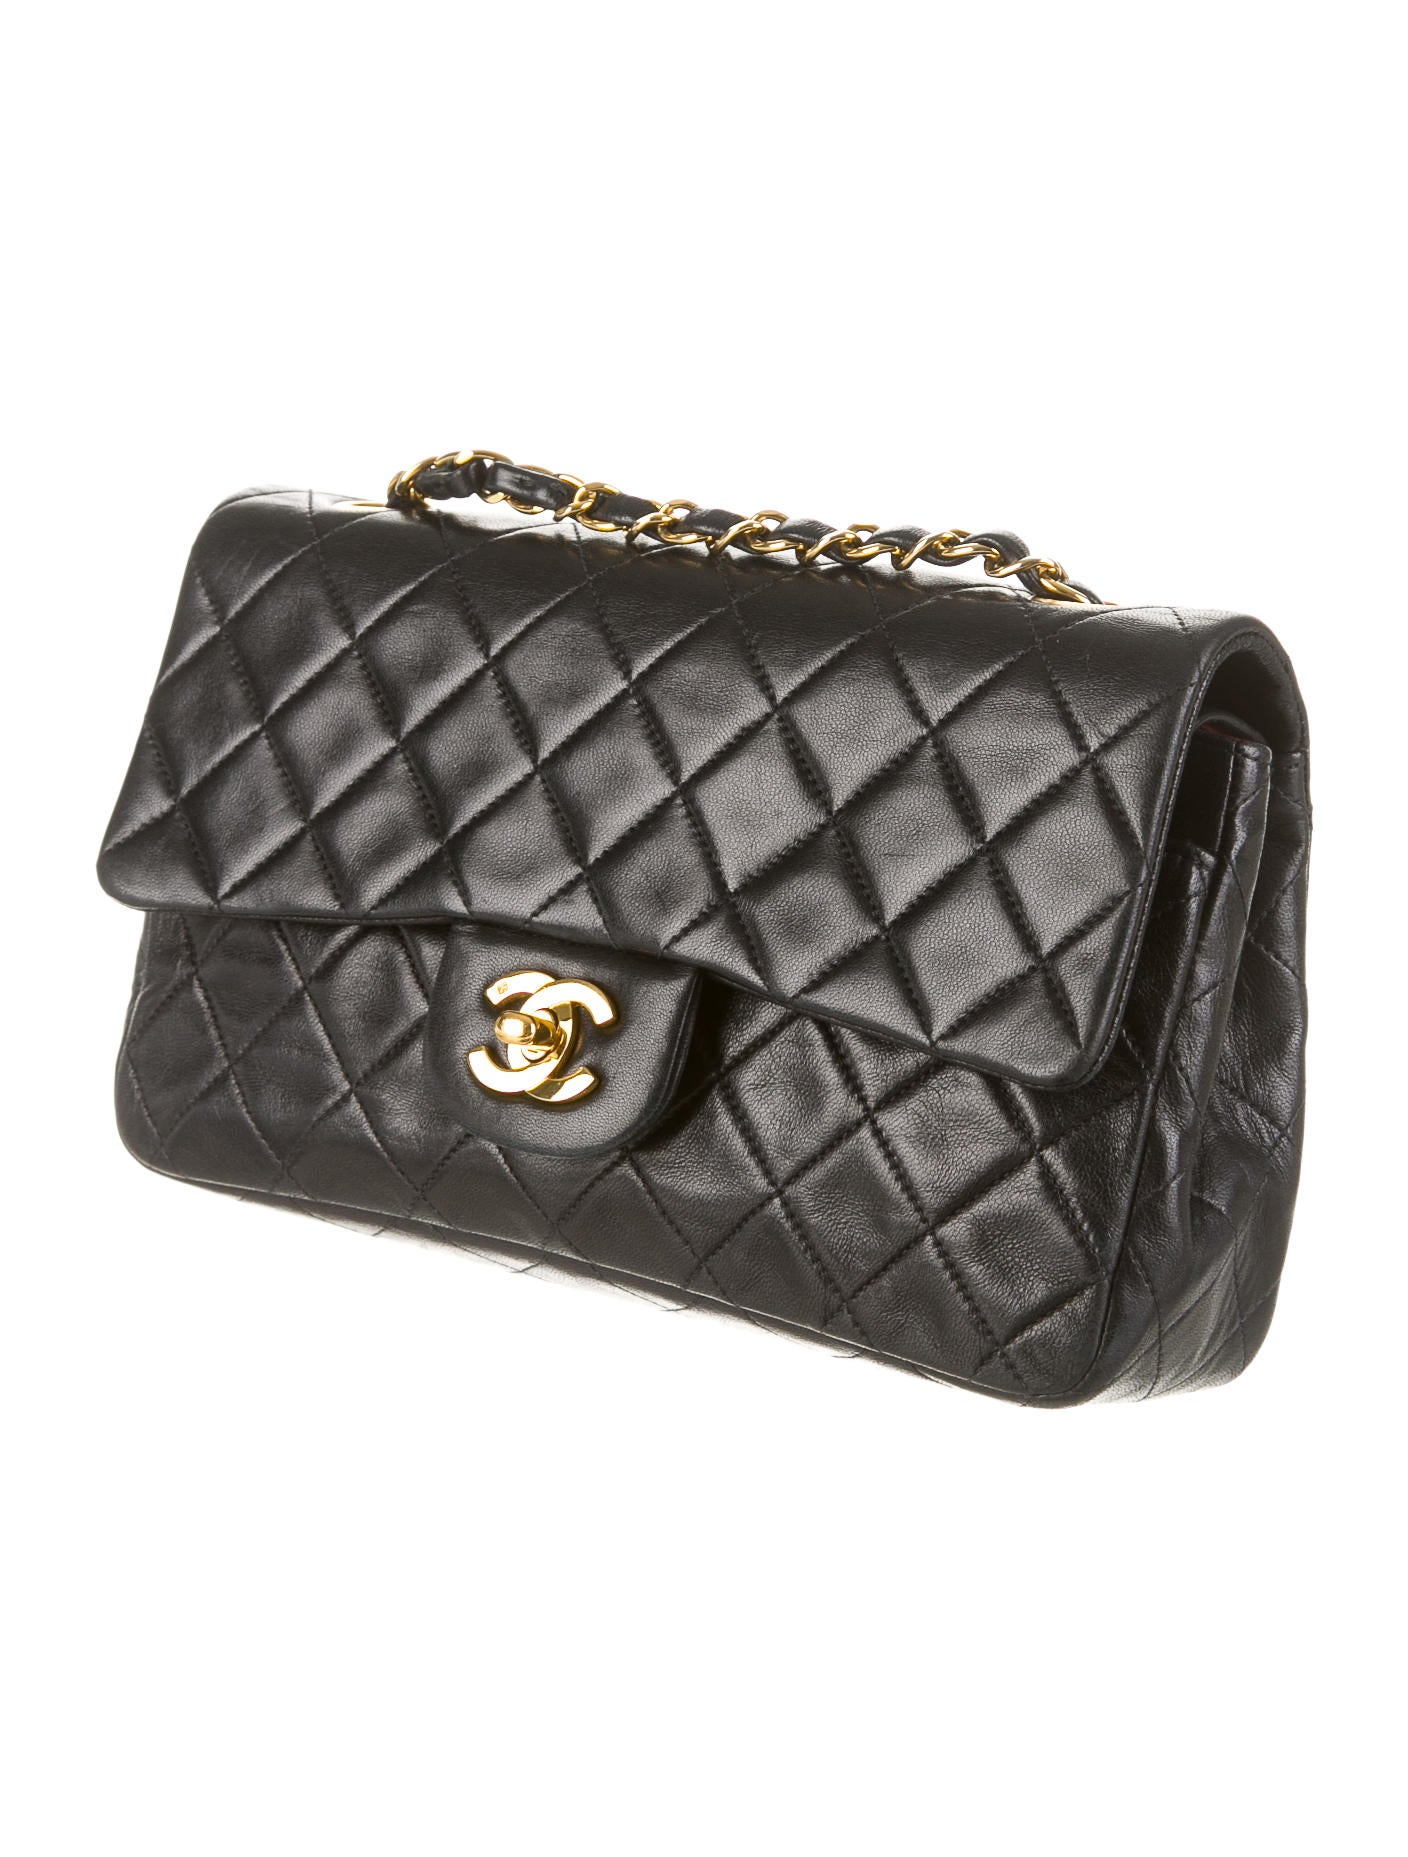 52e0c34adb69 Chanel Classic Double Flap Bag Small | Stanford Center for ...